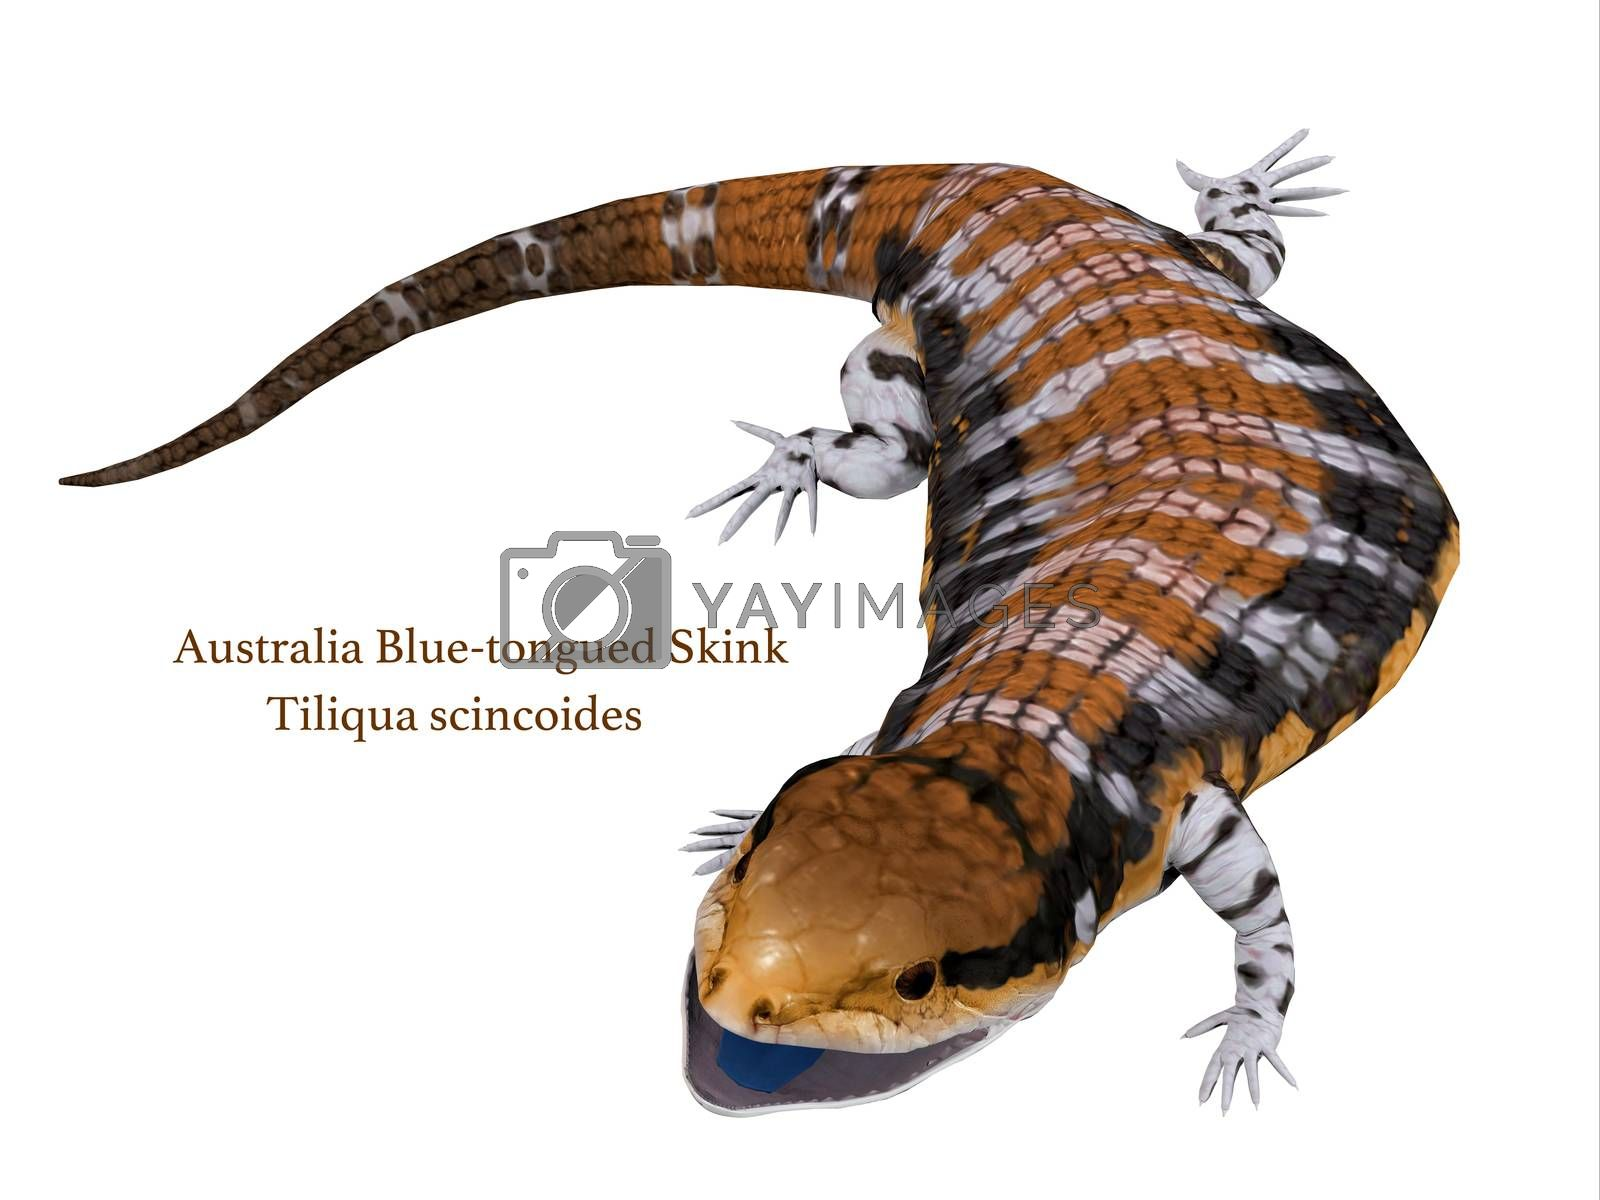 The Australia Blue-tongued Skink is a large terrestrial lizard that is active during the day and omnivorous.